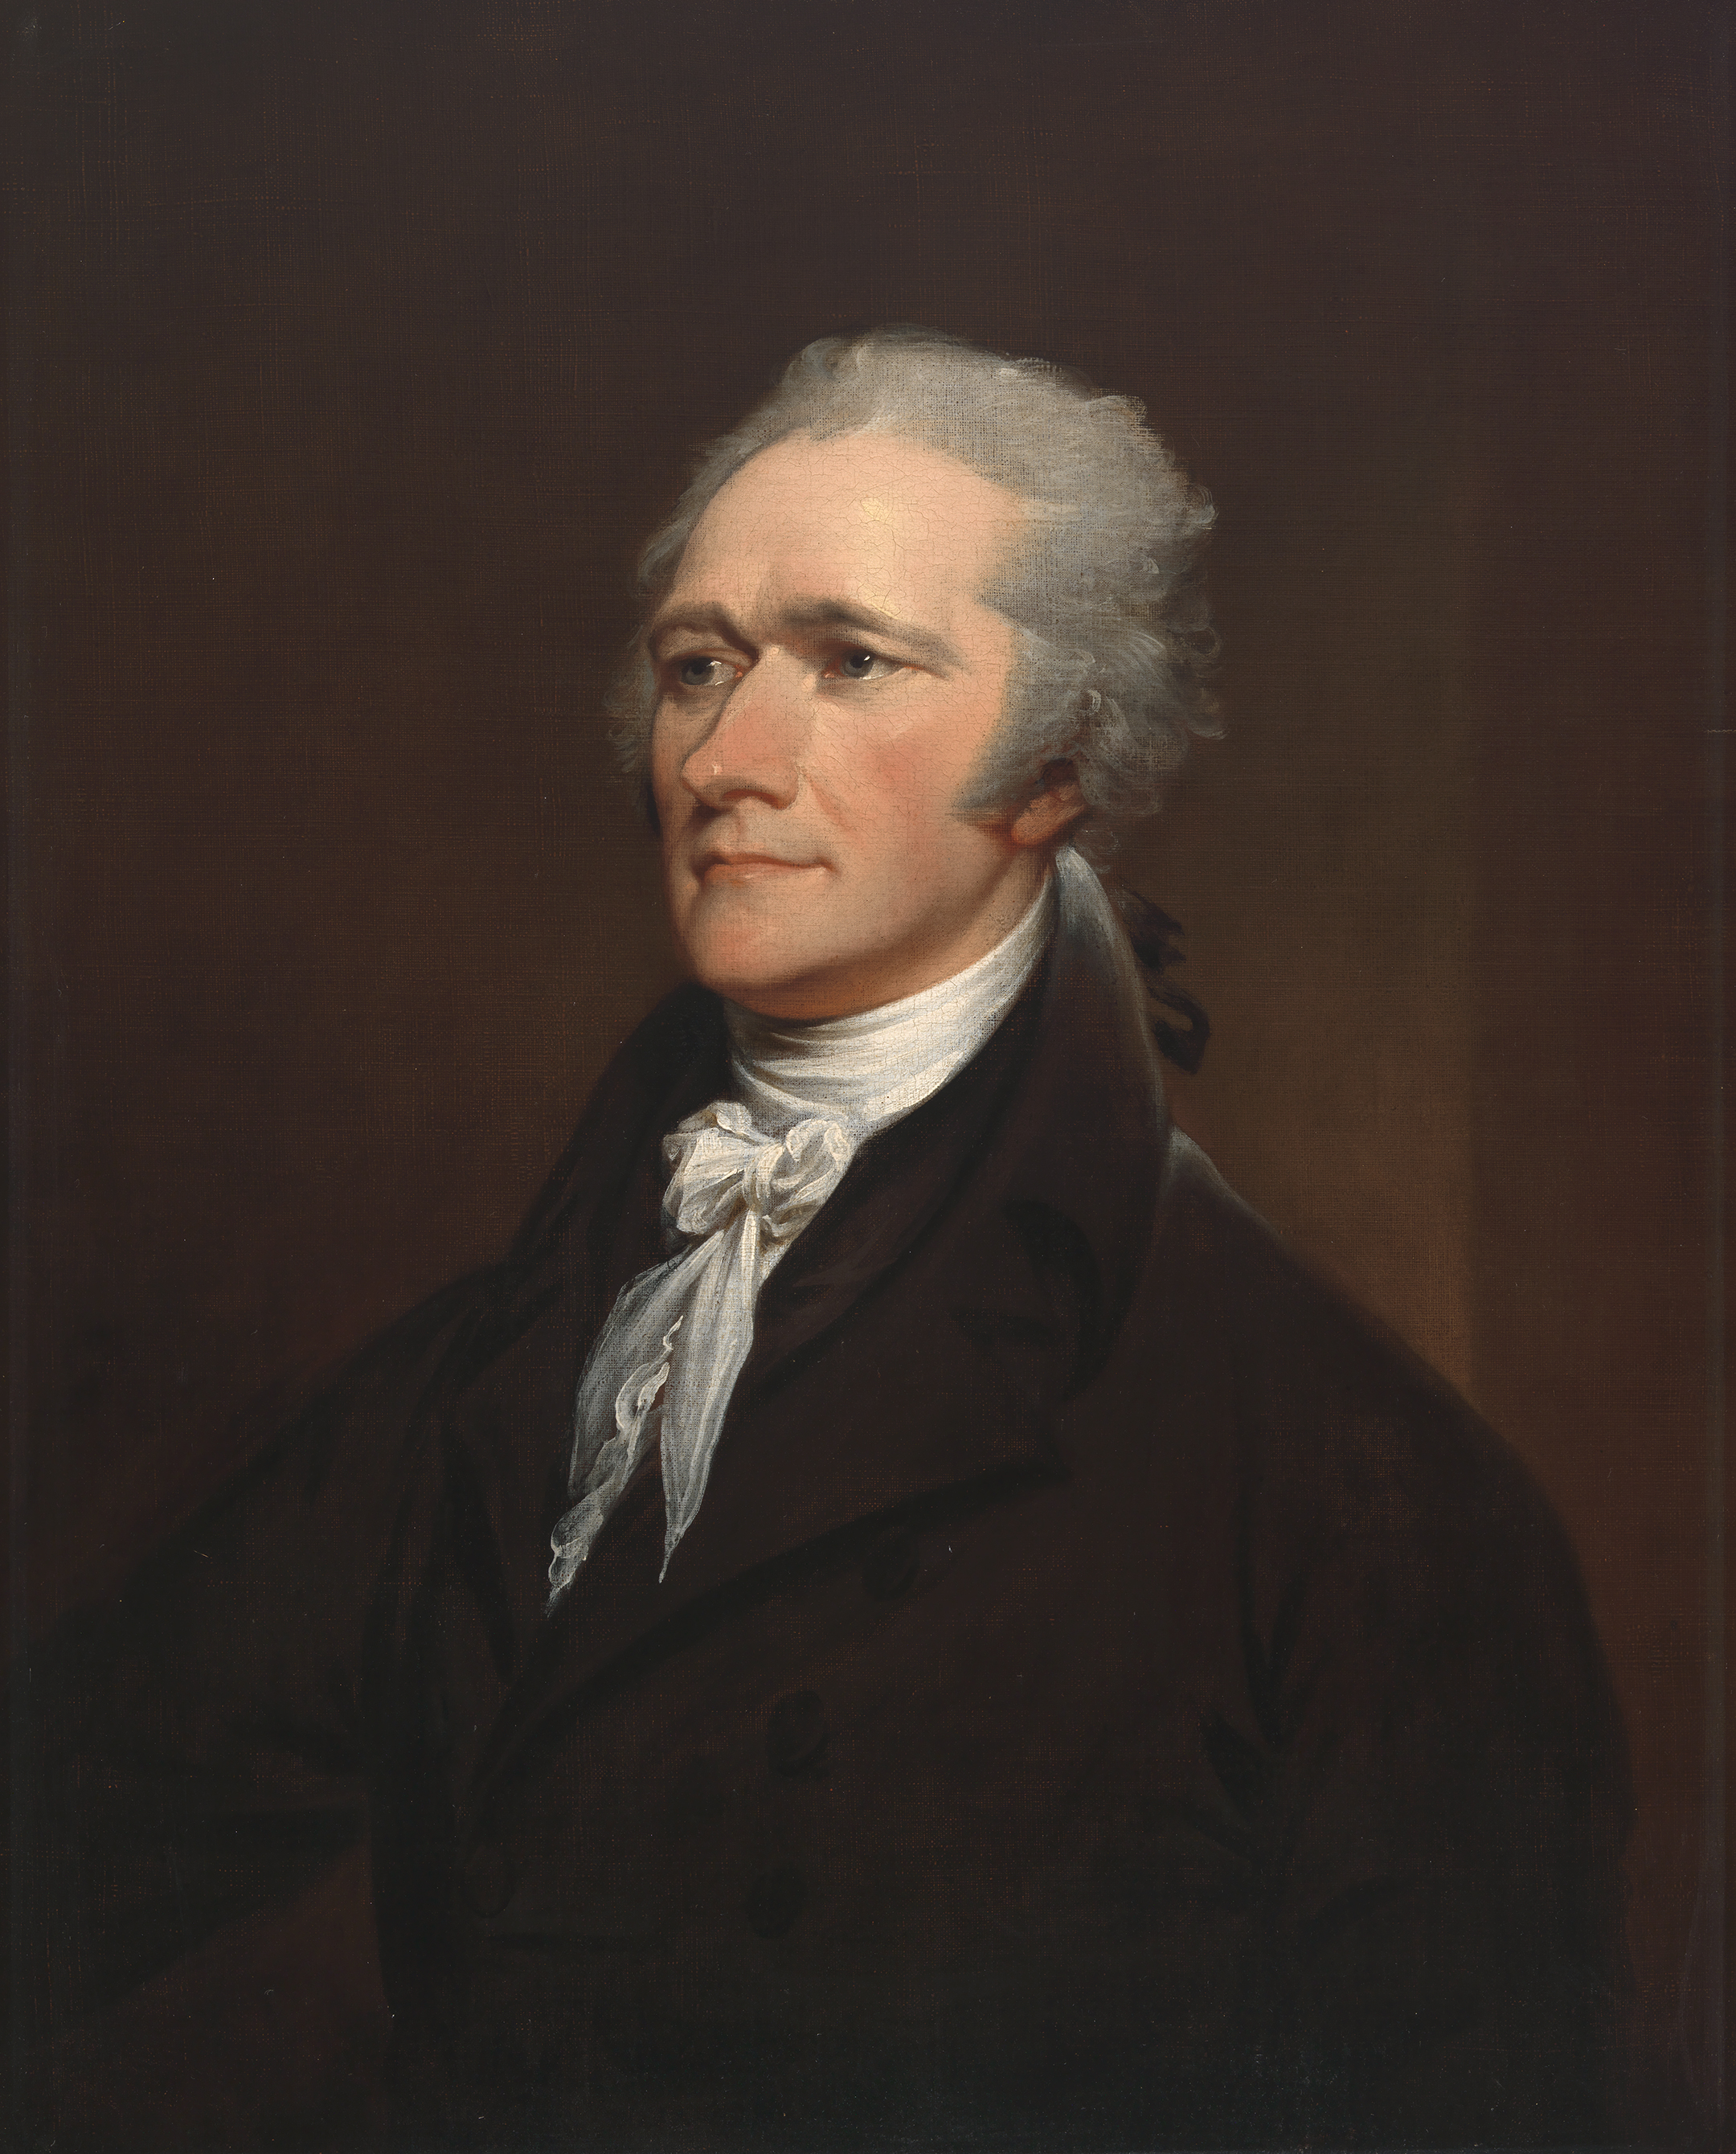 a portrait of alexander hamilton on a brown background